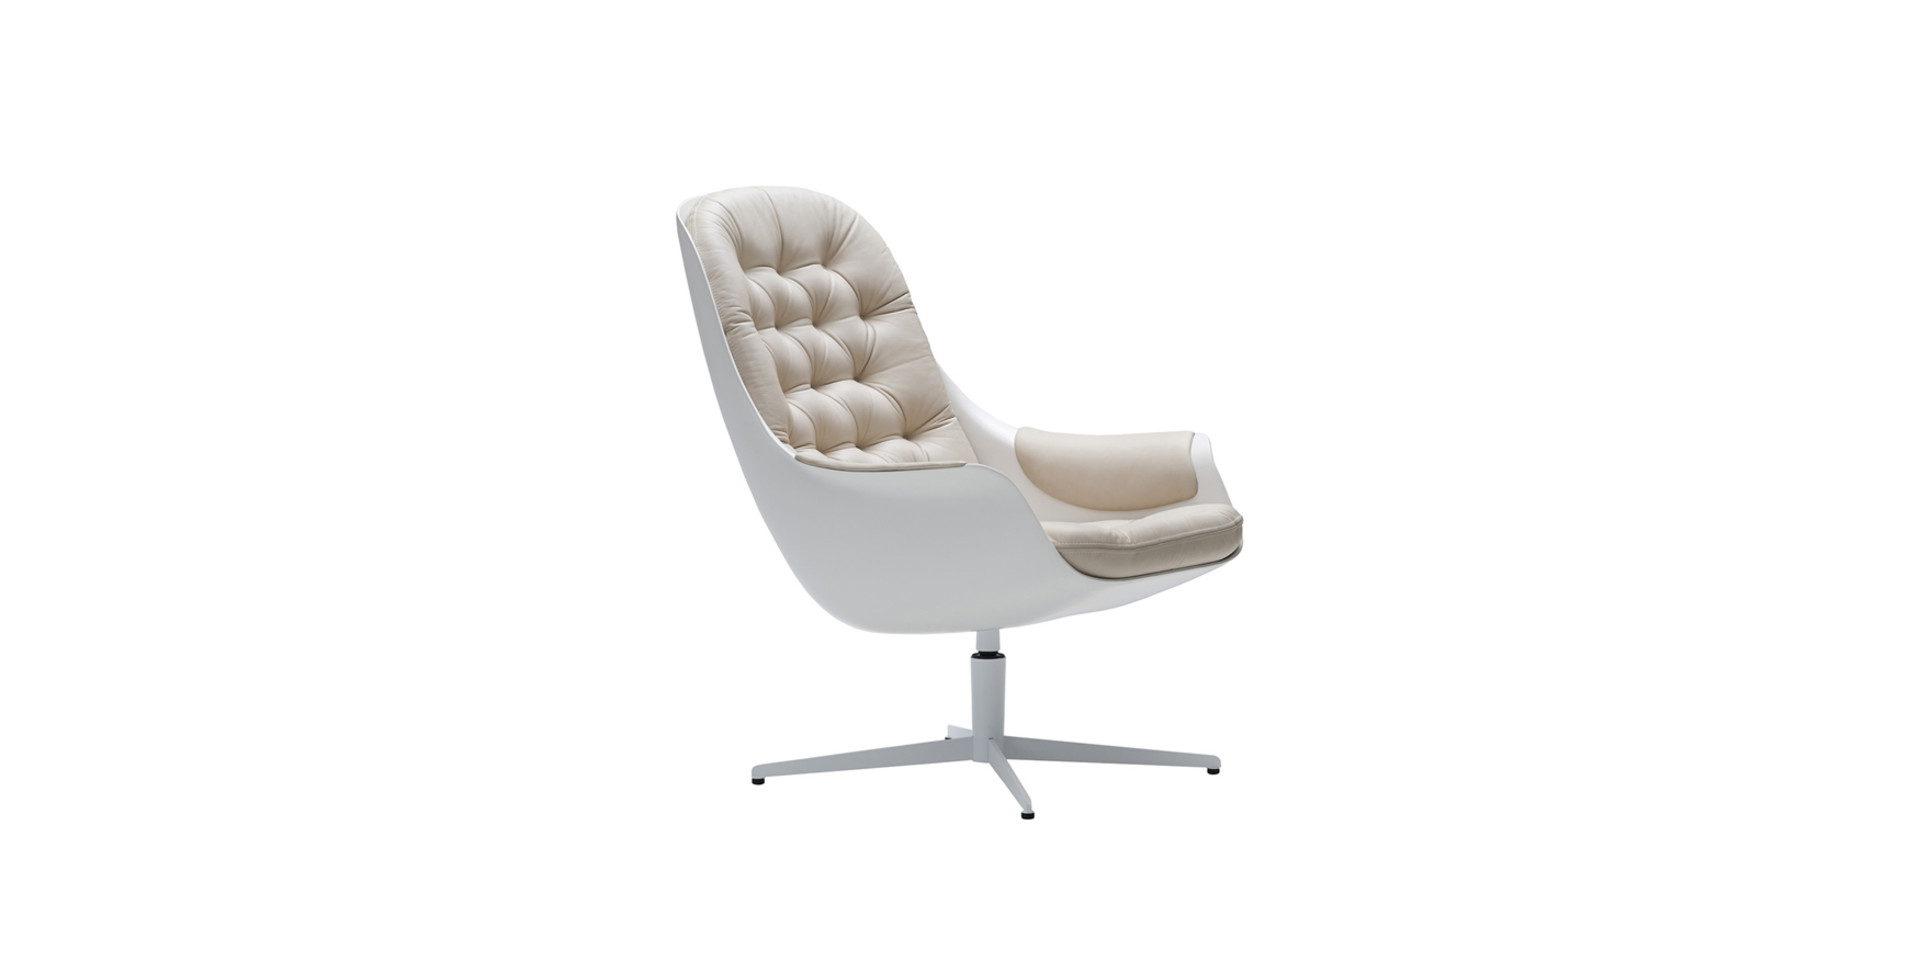 BLACKBIRD_armchair_swivel_white_aniline_nature_2